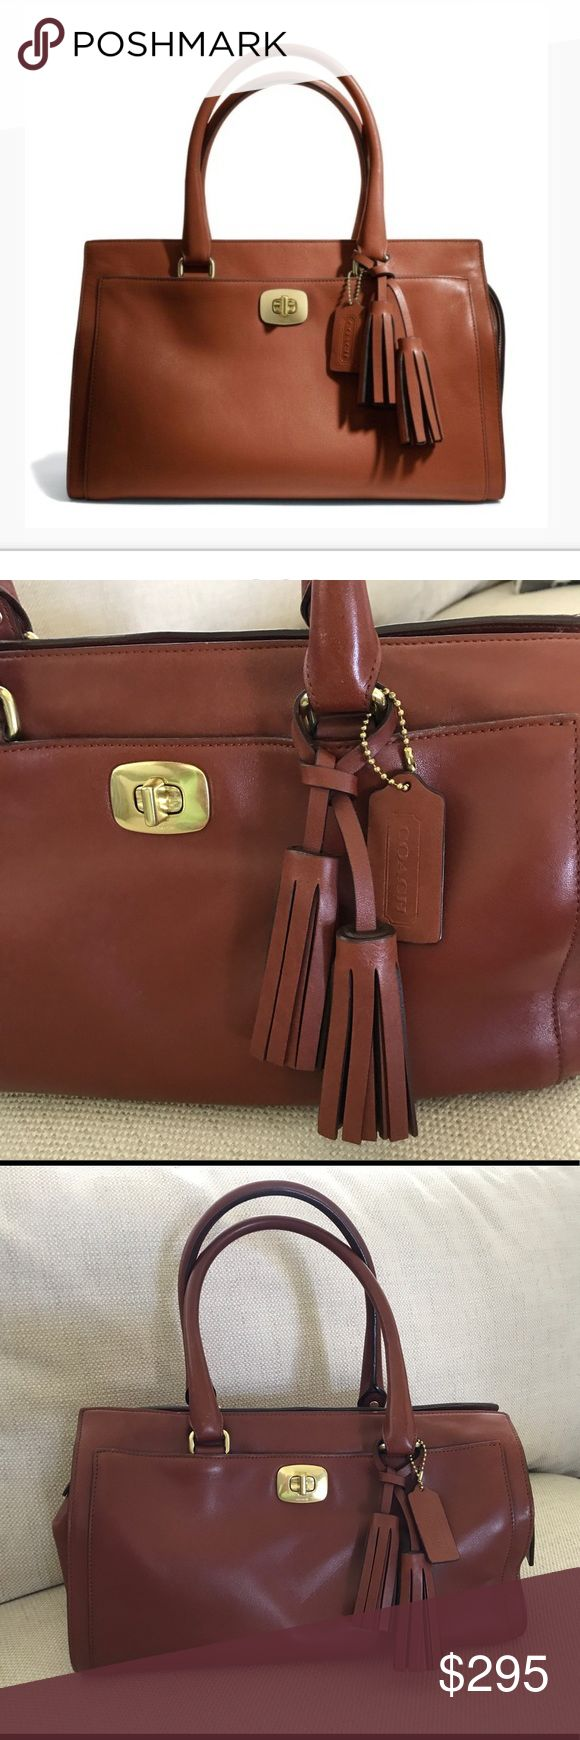 Coach Leather Handbag Authentic Coach Legacy satchel in cognac brown. Gold tone hardware. Bag is in excellent condition with very tiny pen mark inside that's really hard to see. Only used a couple of times as I only use most of bags for outings. Not eligible for bundle discount! Coach Bags Satchels